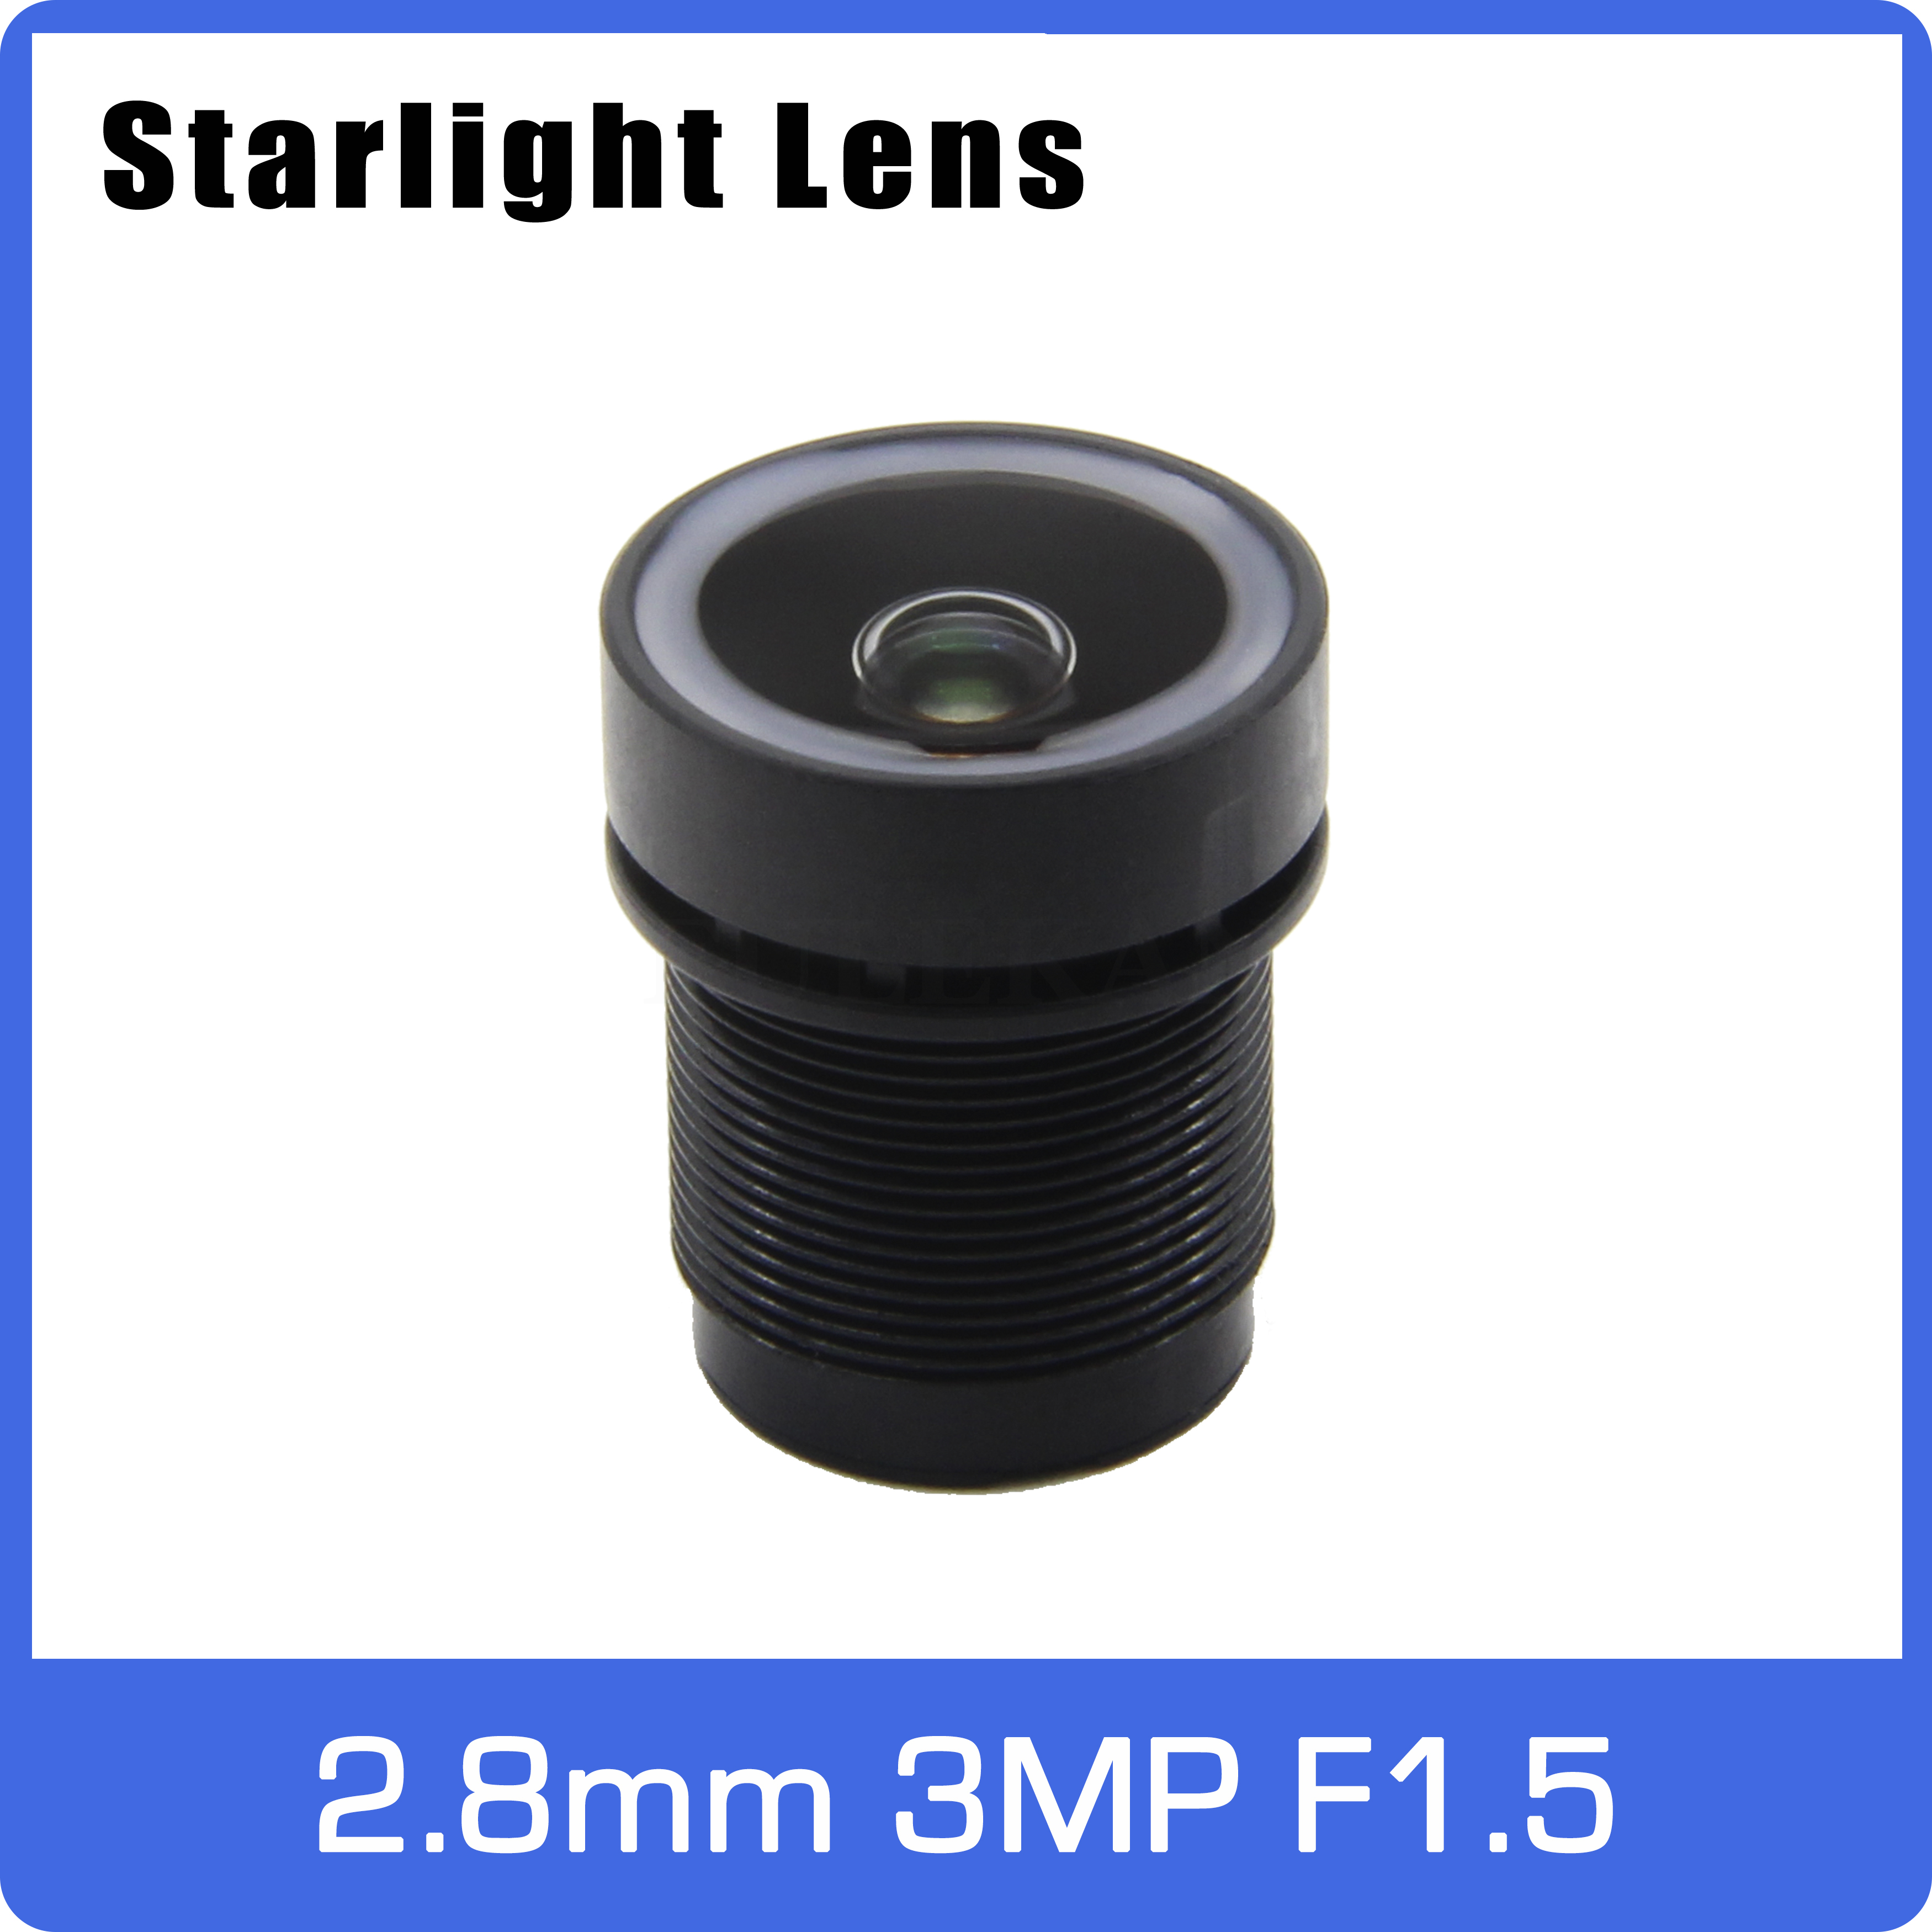 Starlight Lens 3MP 2.8mm Fixed Aperture F1.5 Big Angle For SONY IMX290/291/307/327 Low Light CCTV AHD IP Camera Free Shipping